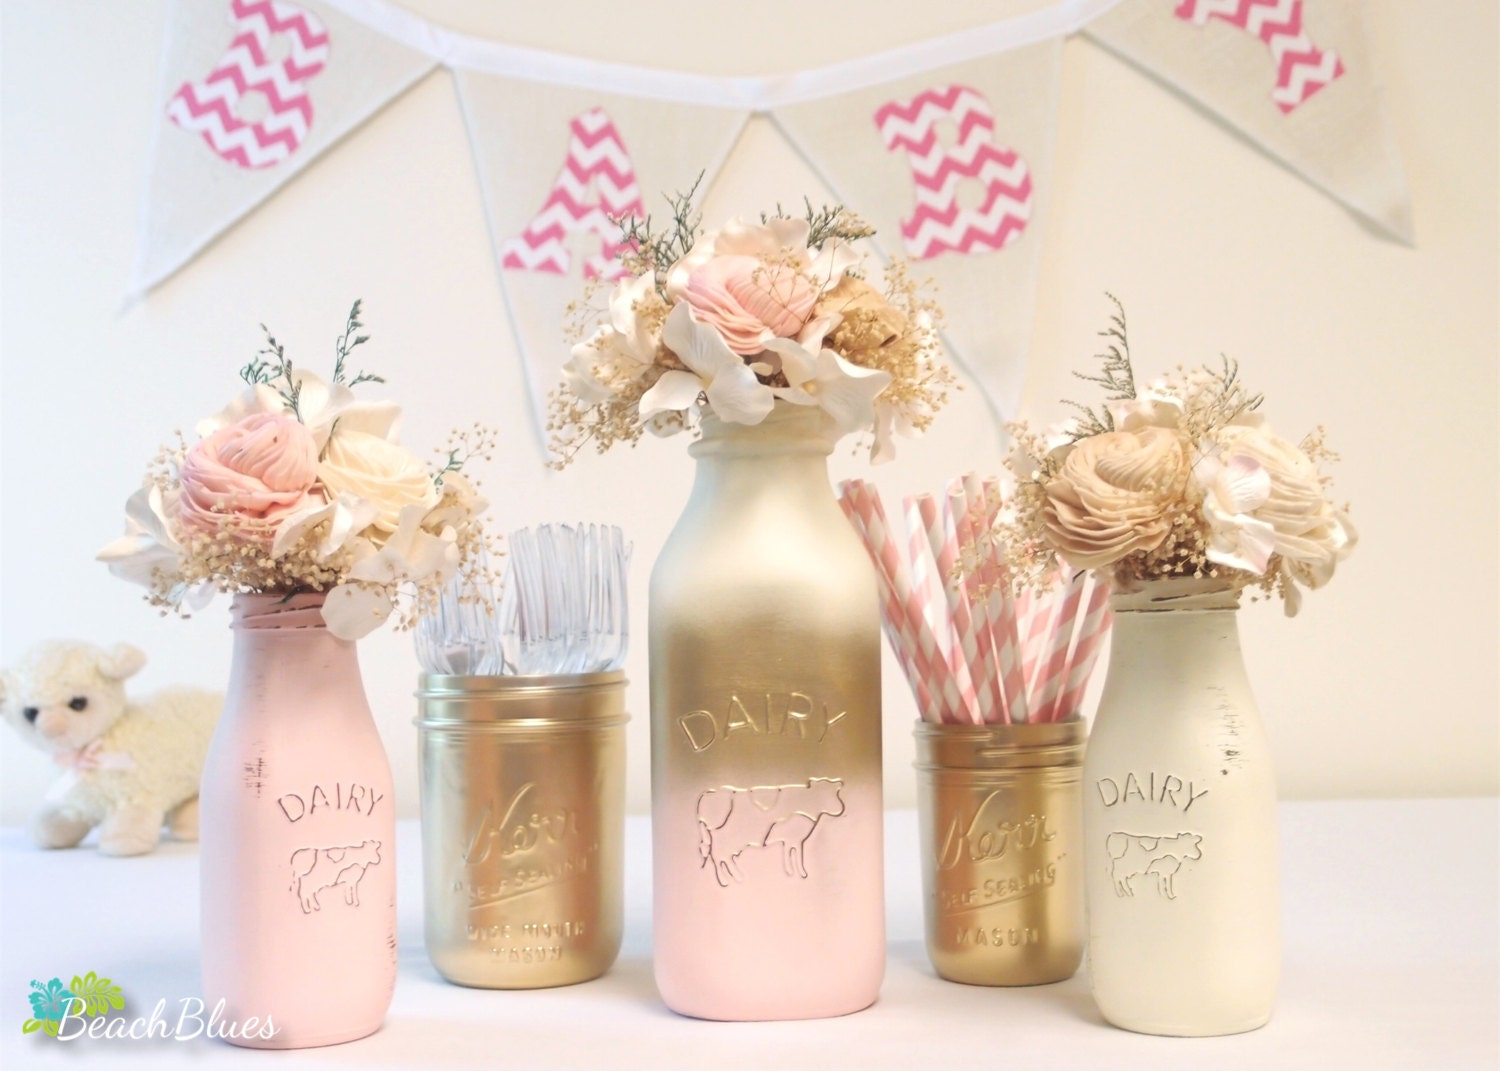 Baby Shower Centerpiece Painted Mason Jar Milk Bottles Pink, Baby Shower